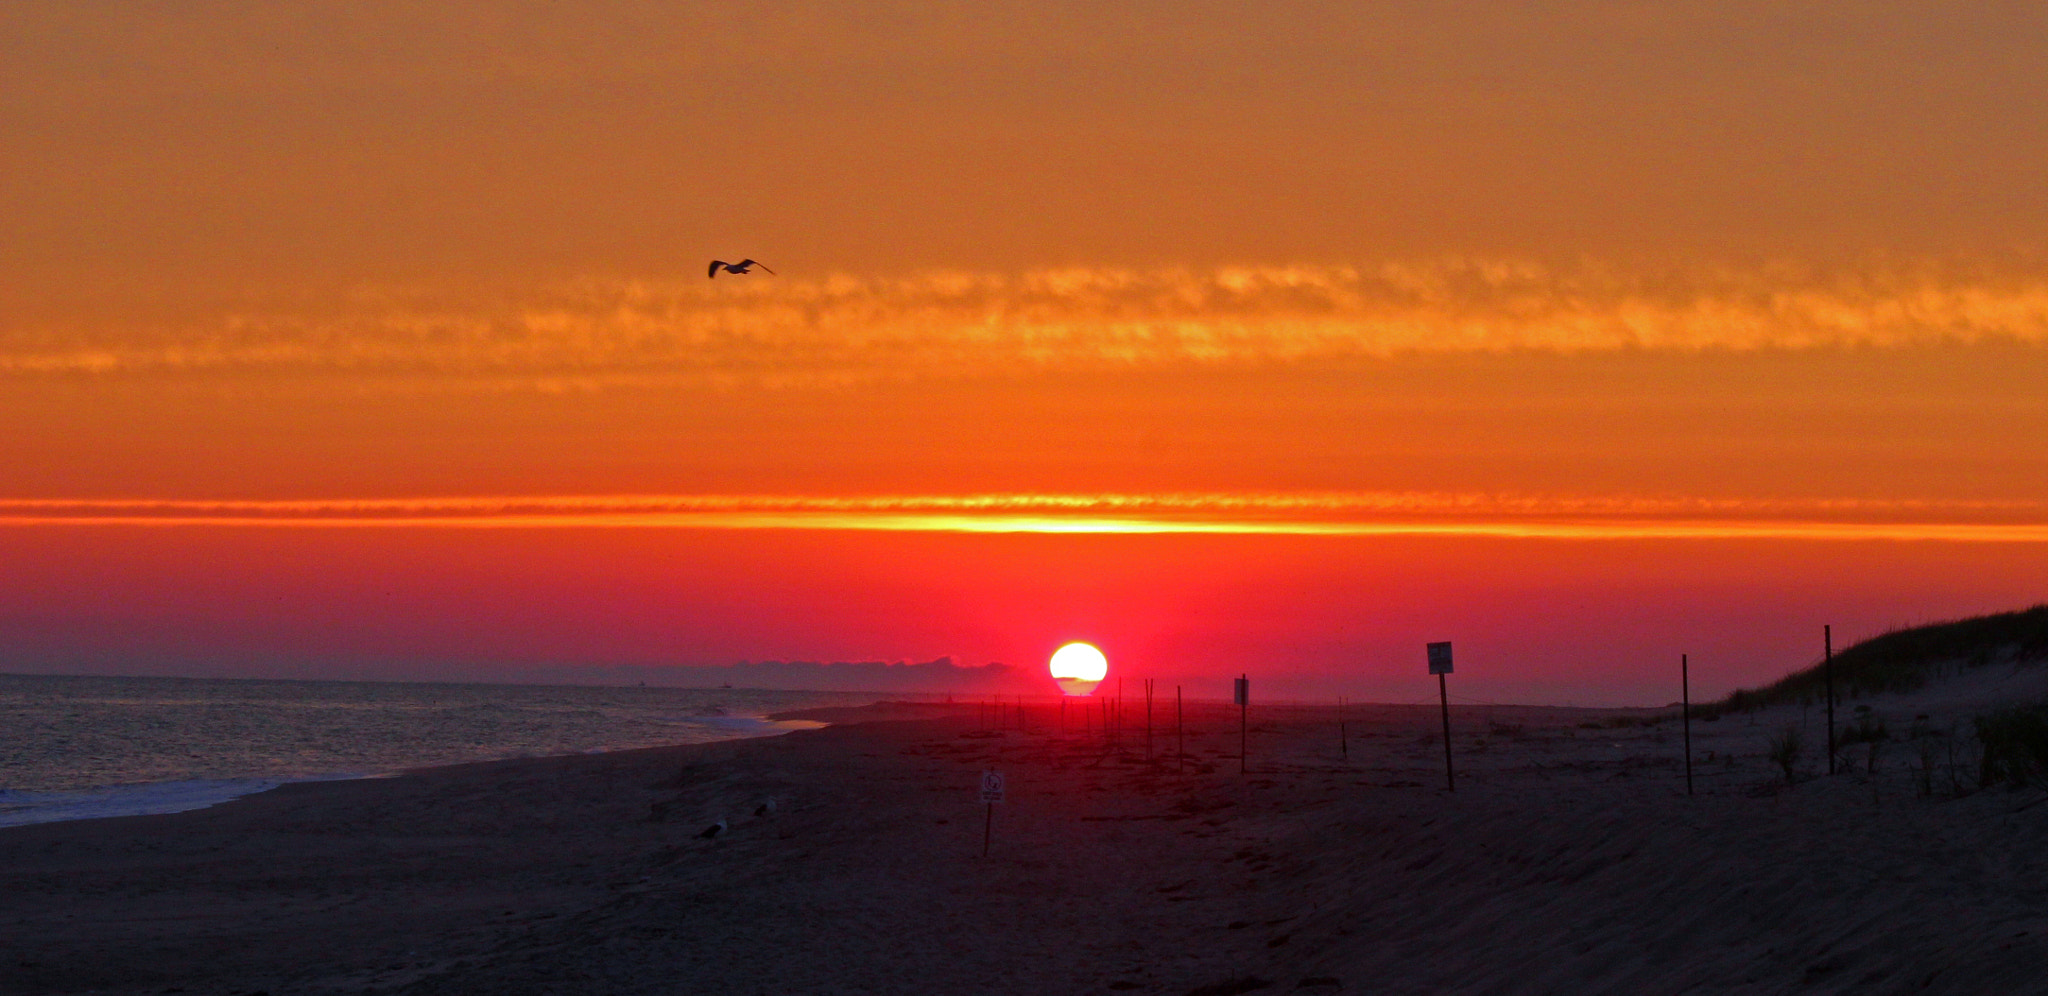 Photograph NANTUCKET ISLAND SUNSET by robin ulery on 500px